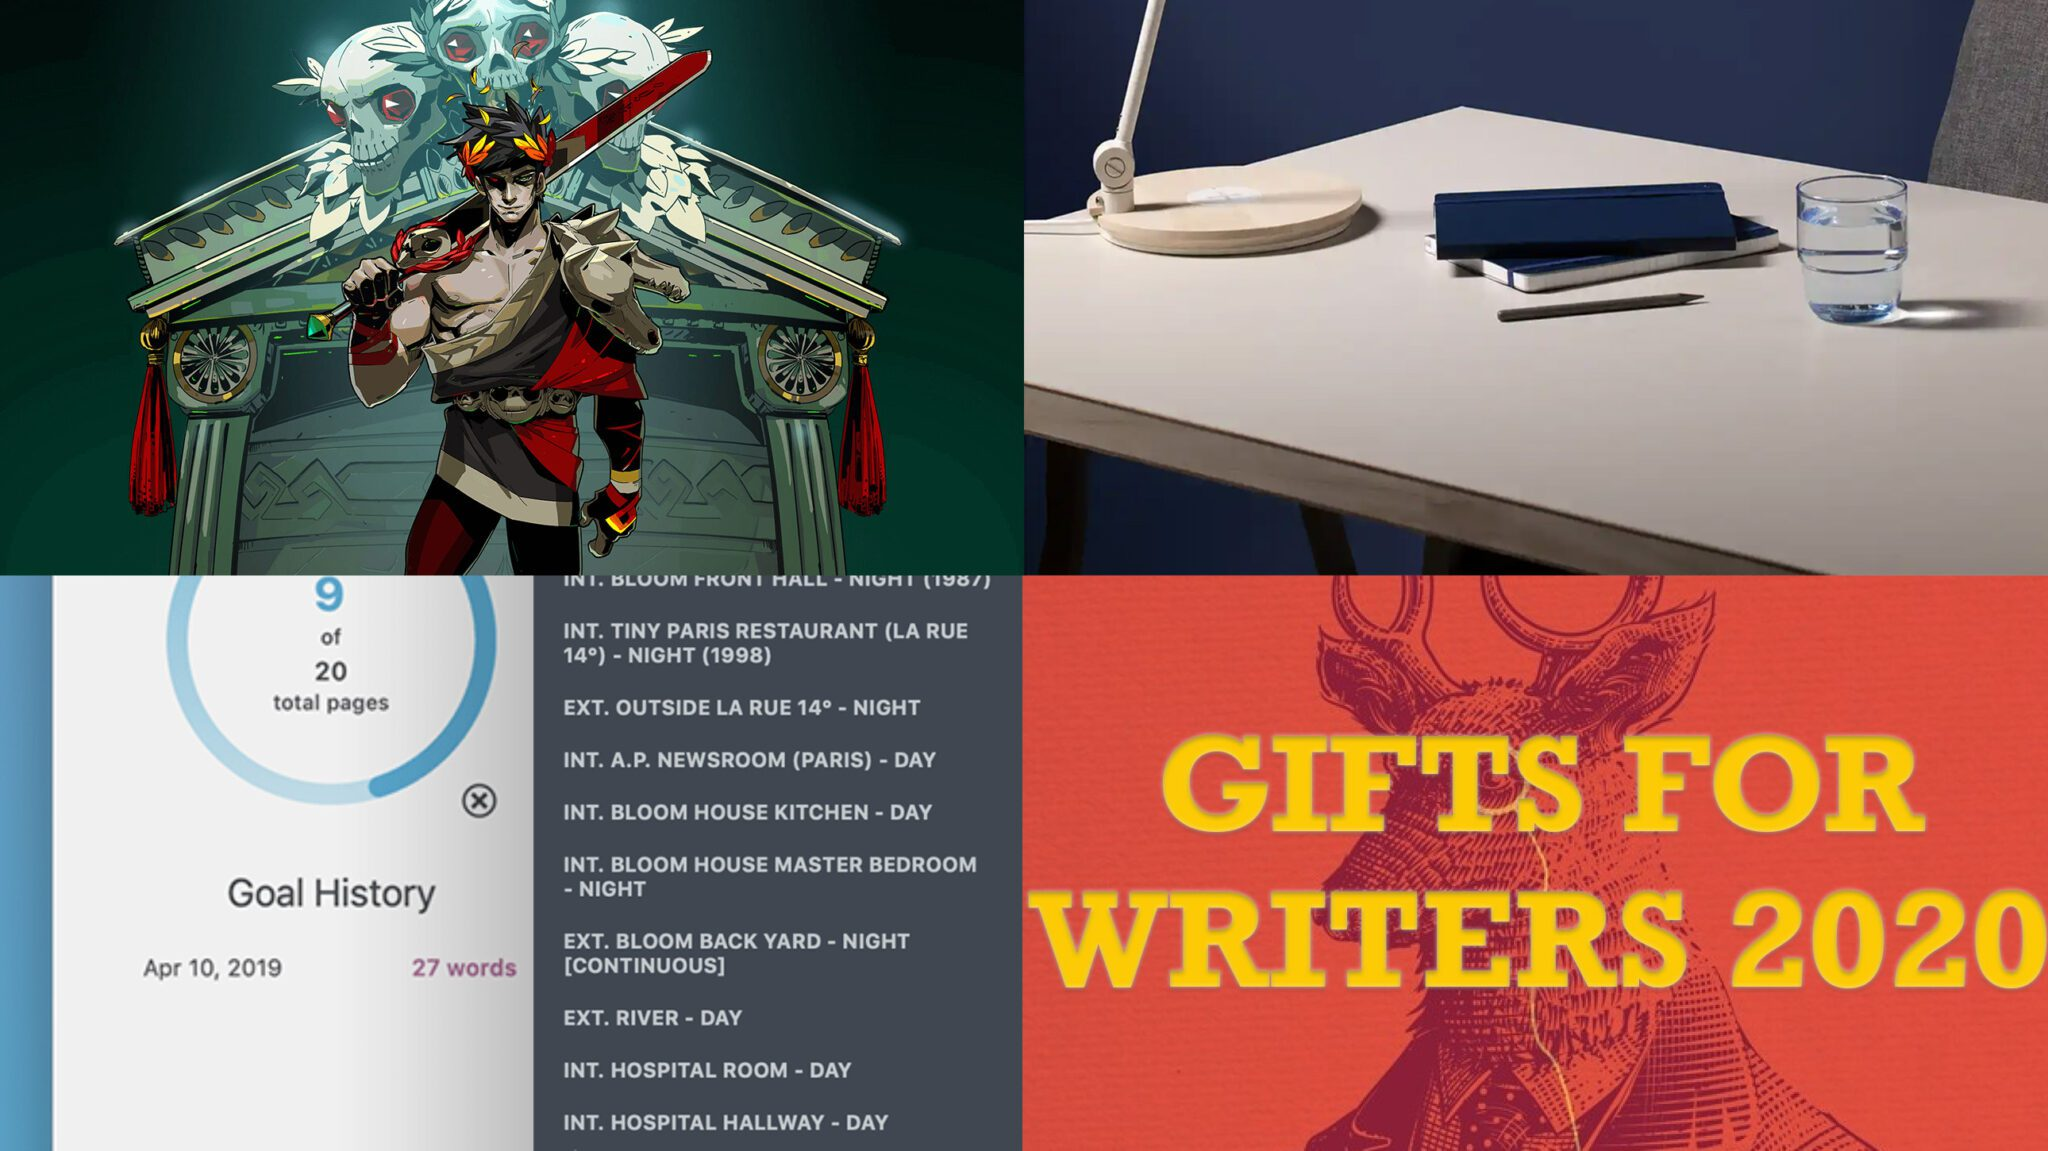 GIFTS FOR WRITERS 2020